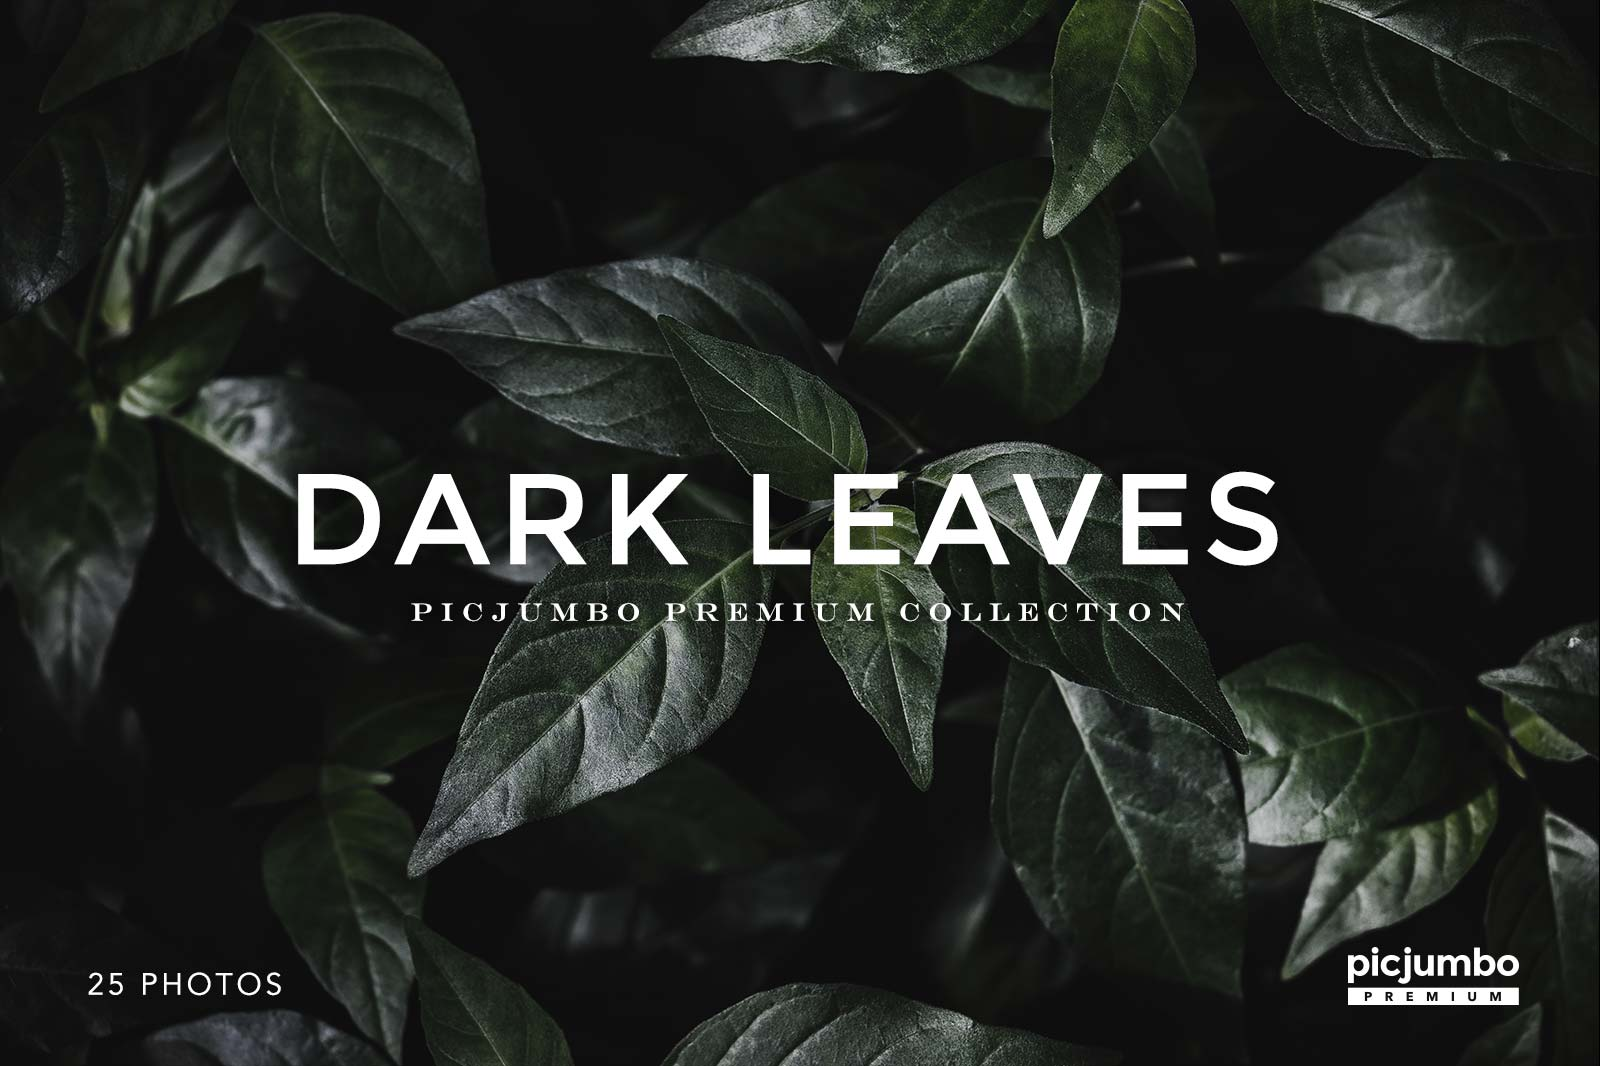 Dark Leaves — Join PREMIUM and get instant access to this collection!